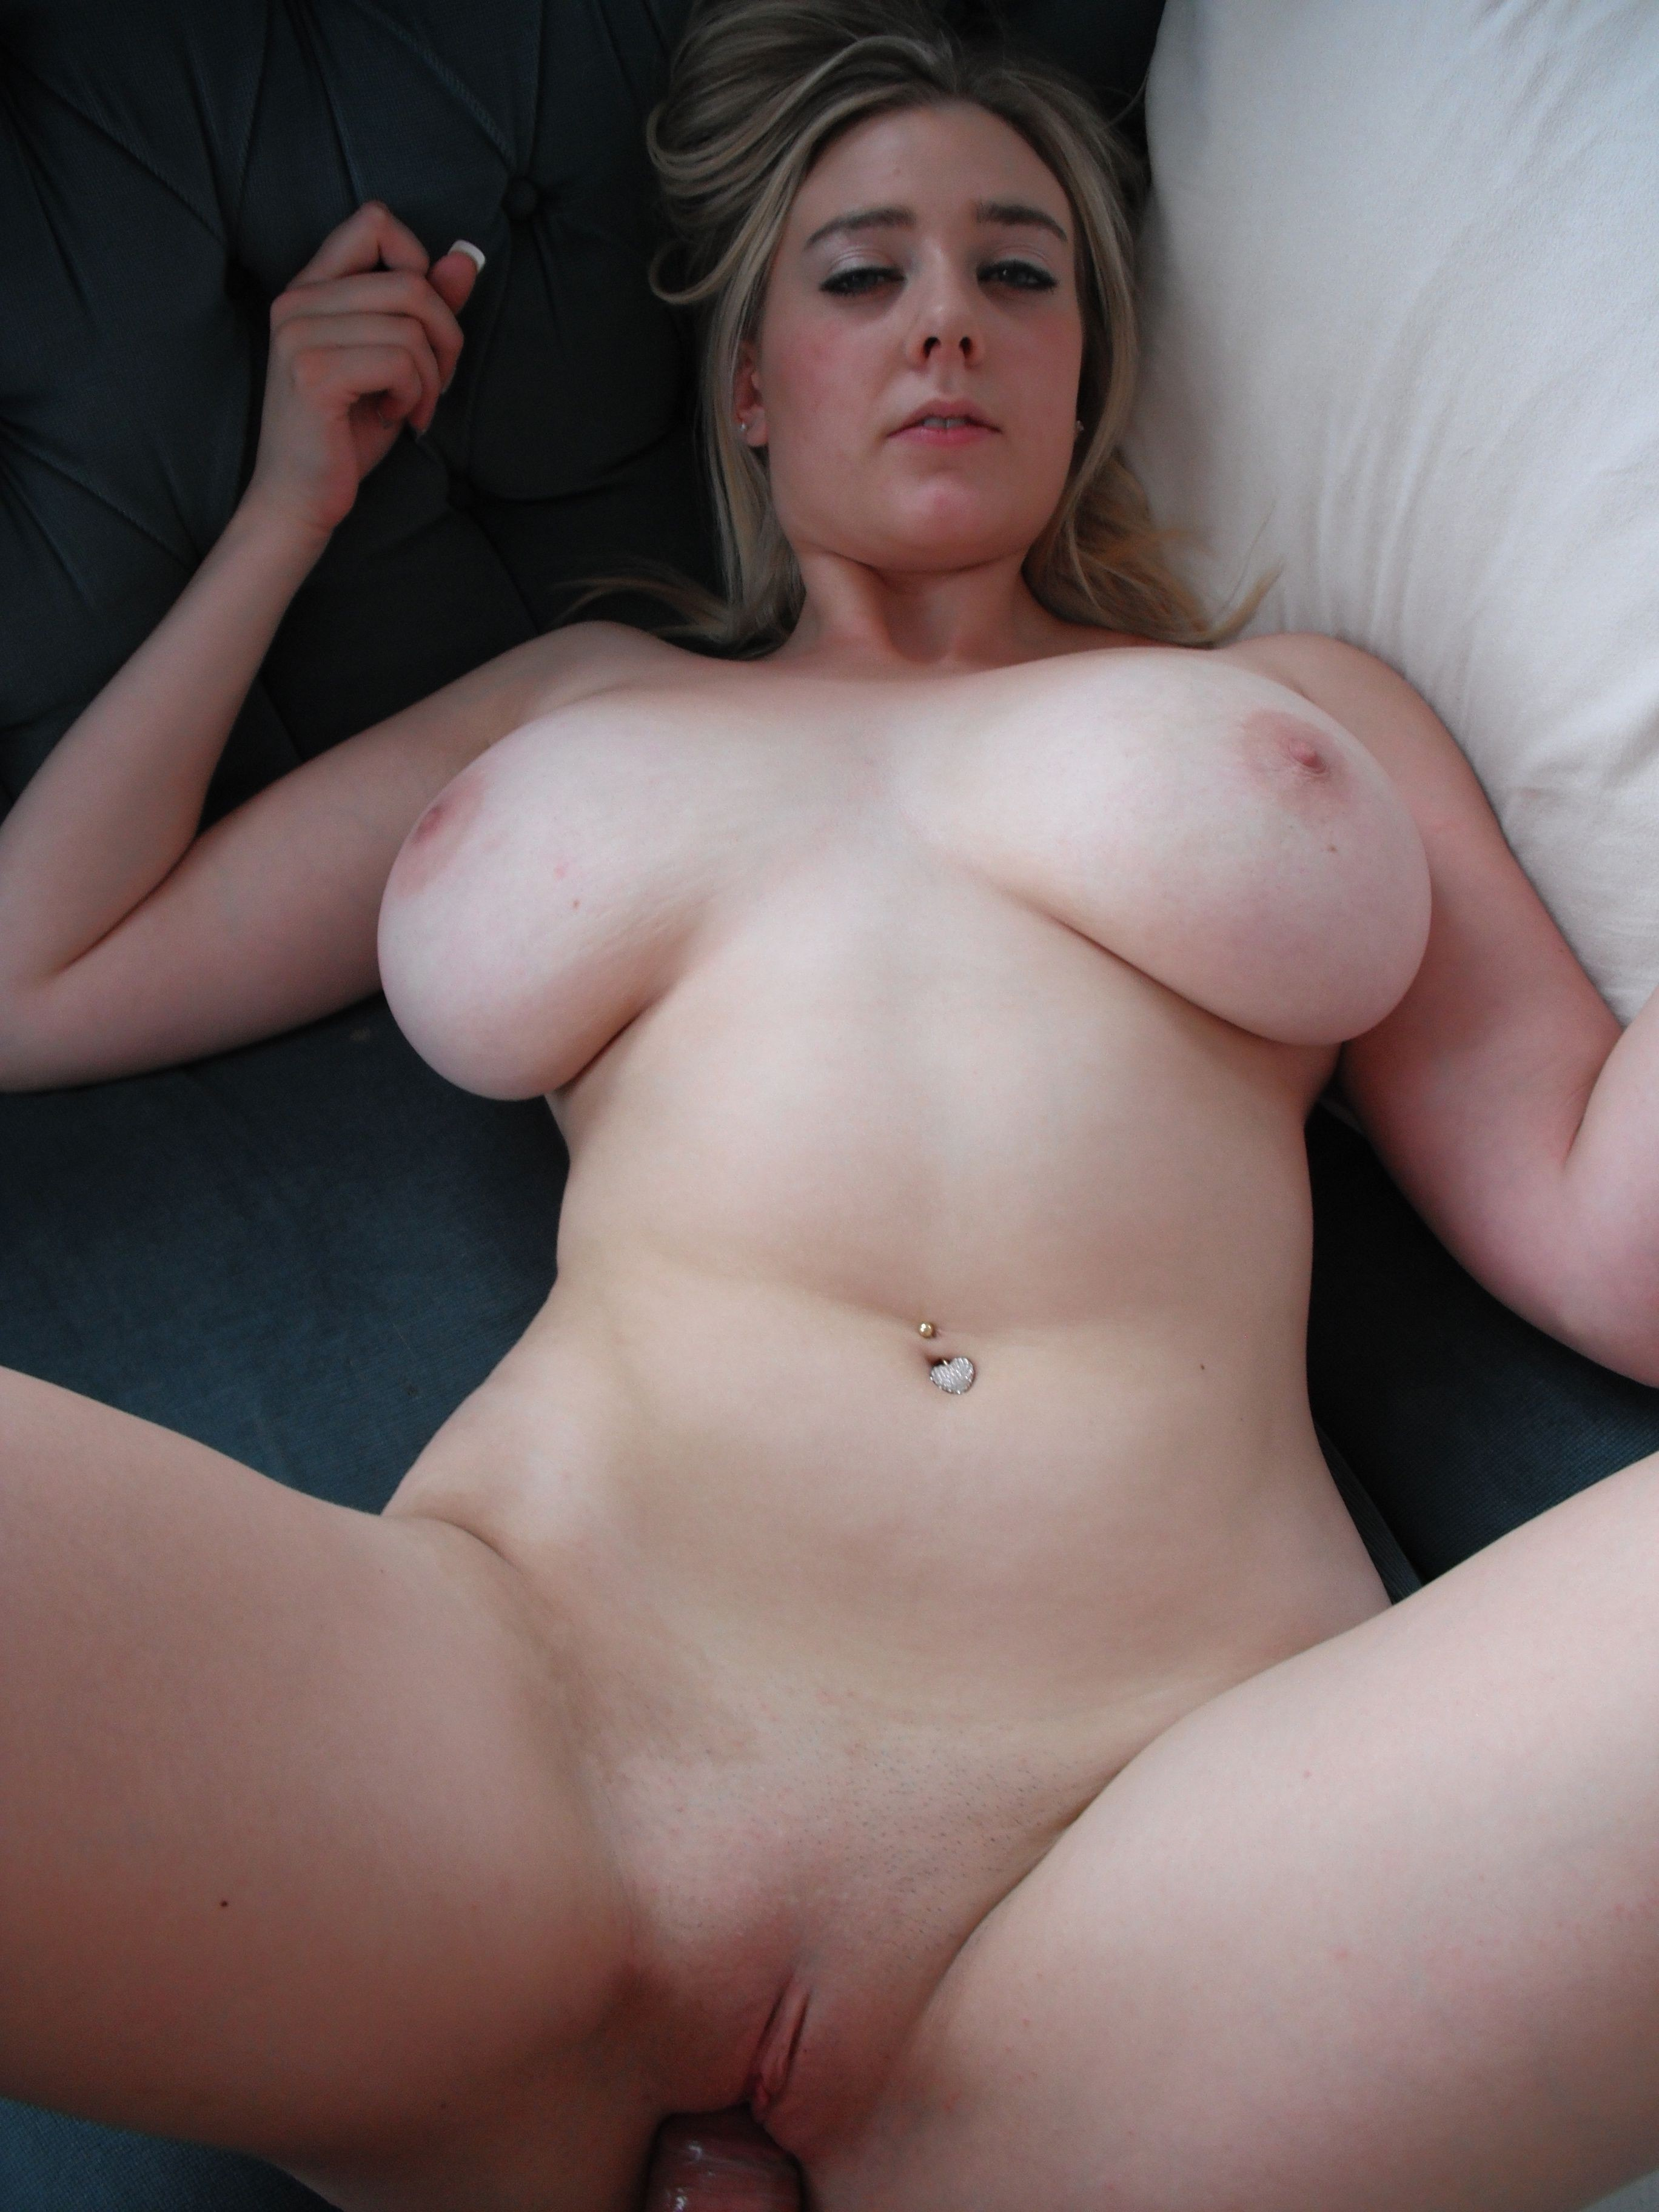 Bbw cc and friend lesbian love 3